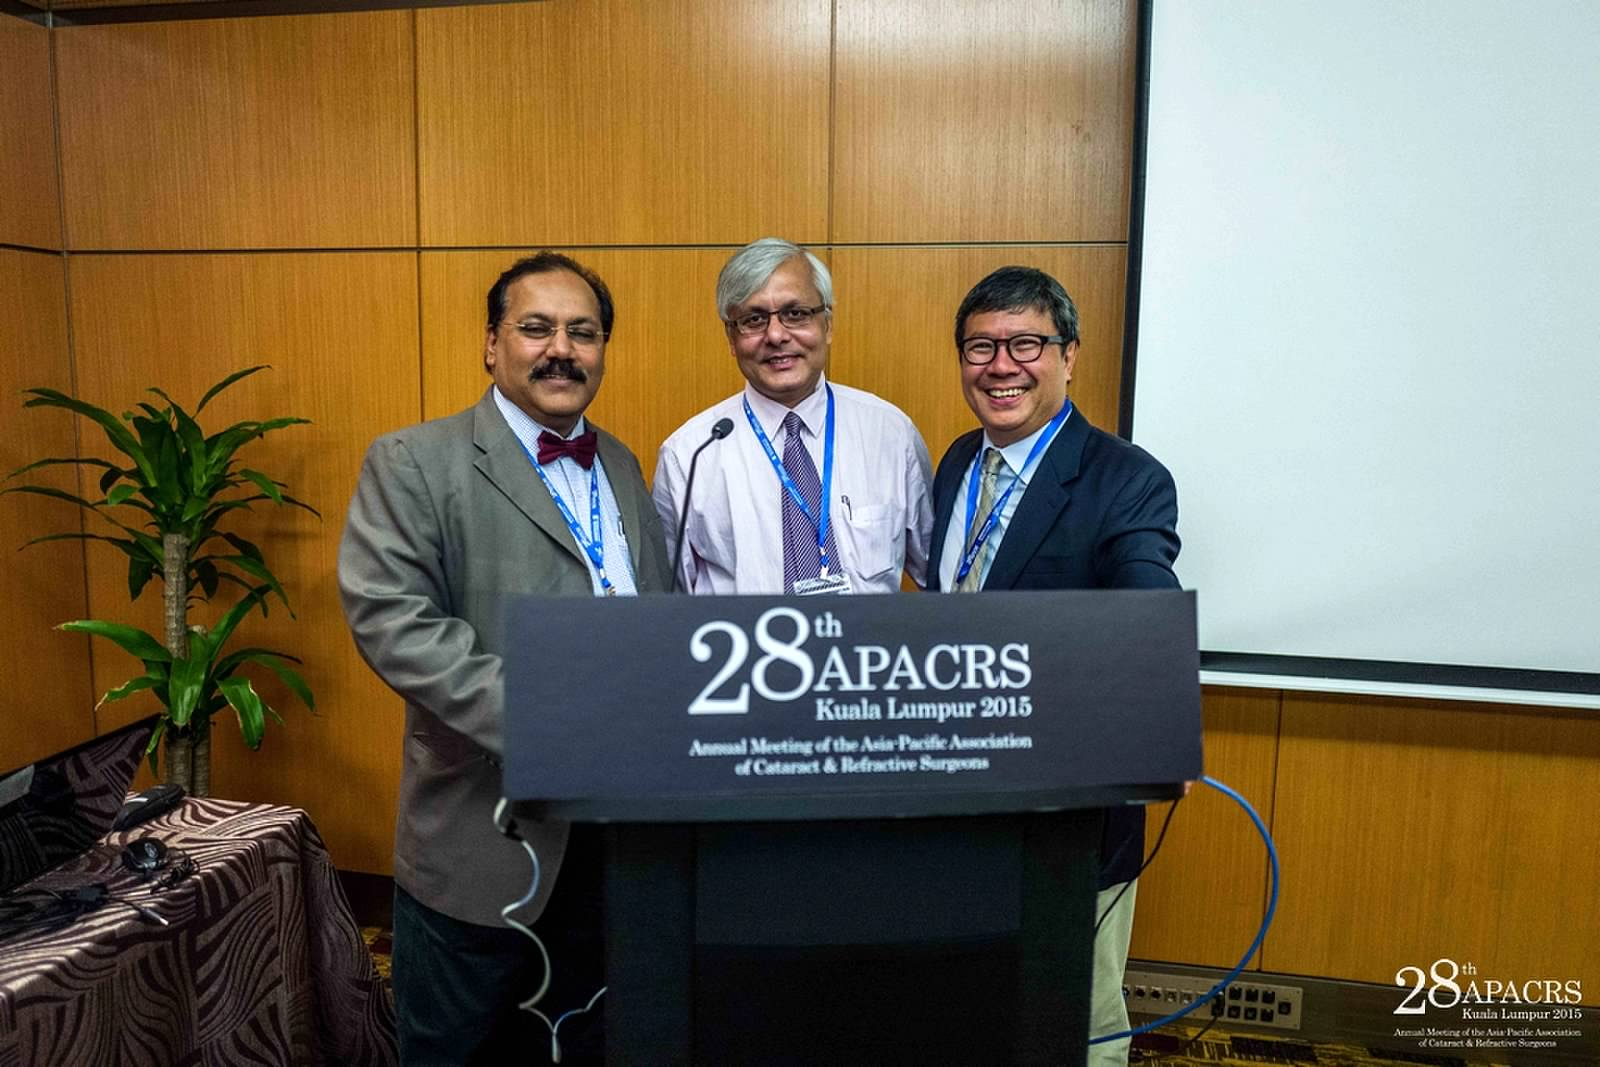 Dr Somdutt Prasad with other guests at the APACRS conference in Kuala Lumpur, Malaysia